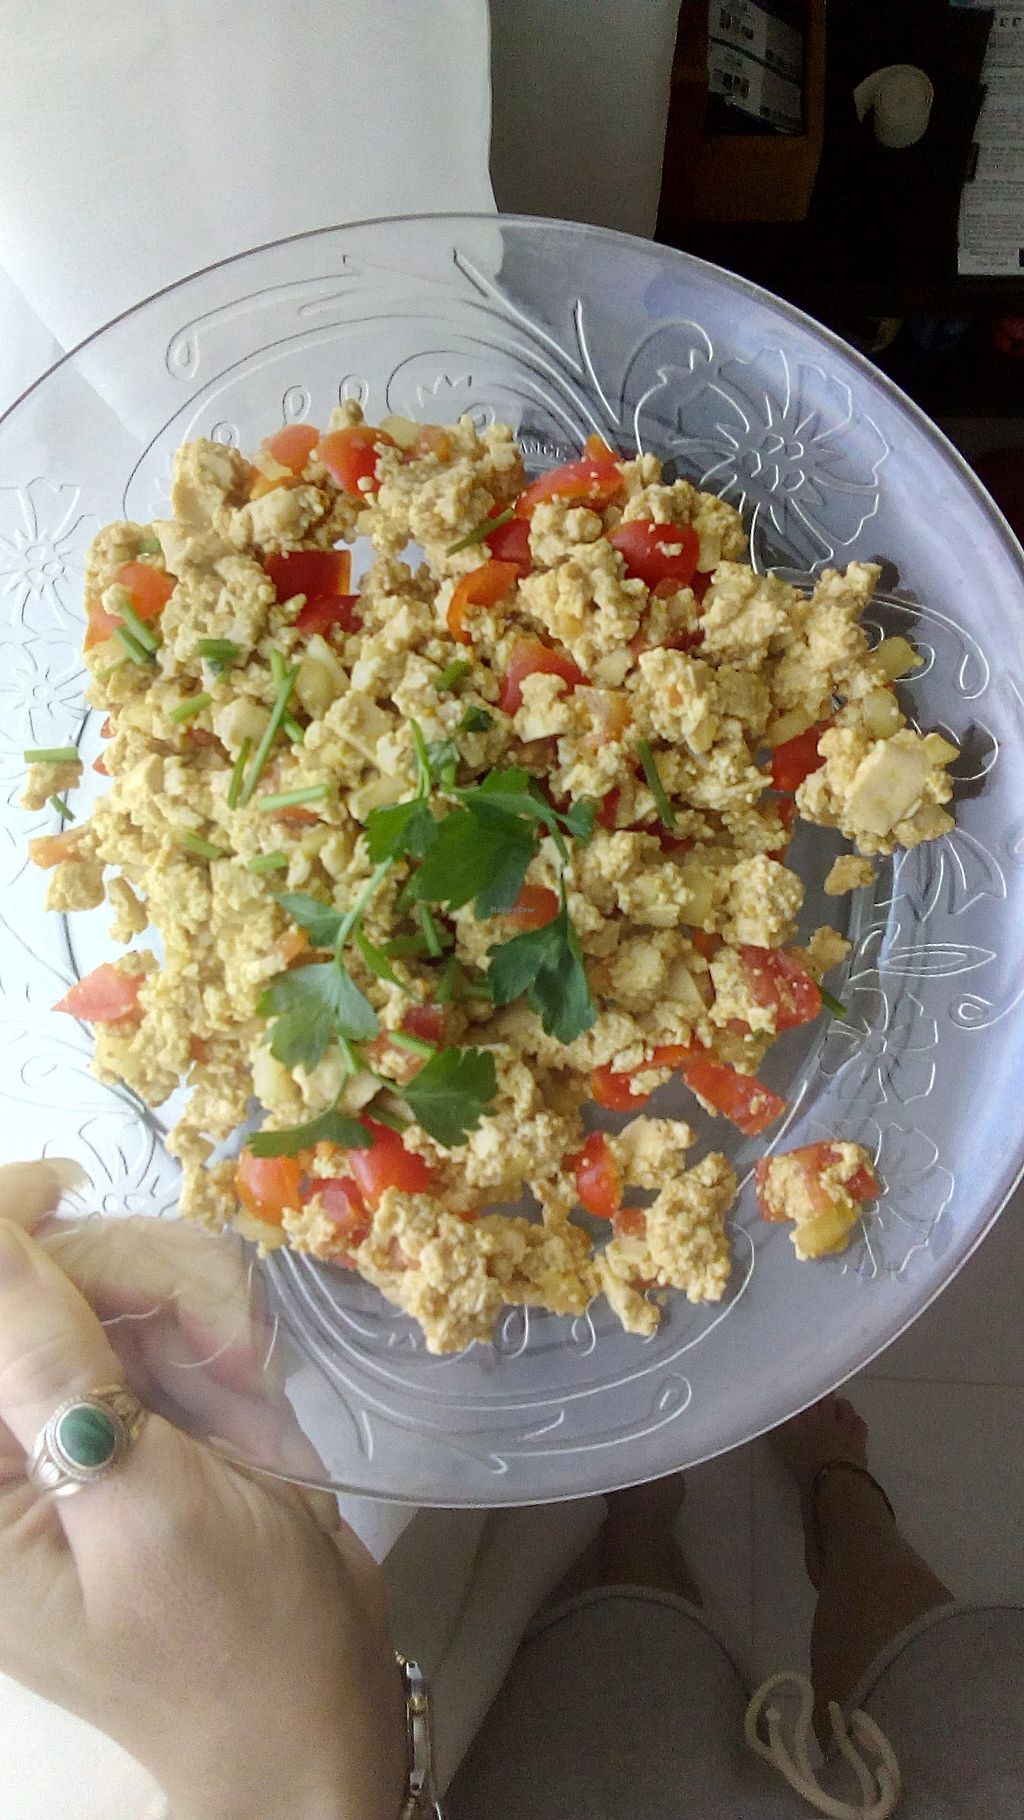 "Photo of U are Brilliant Homestay  by <a href=""/members/profile/u_are_brilliant"">u_are_brilliant</a> <br/>Vegan Scrambled Tofu tastes amazingly real! <br/> July 14, 2017  - <a href='/contact/abuse/image/88363/280307'>Report</a>"